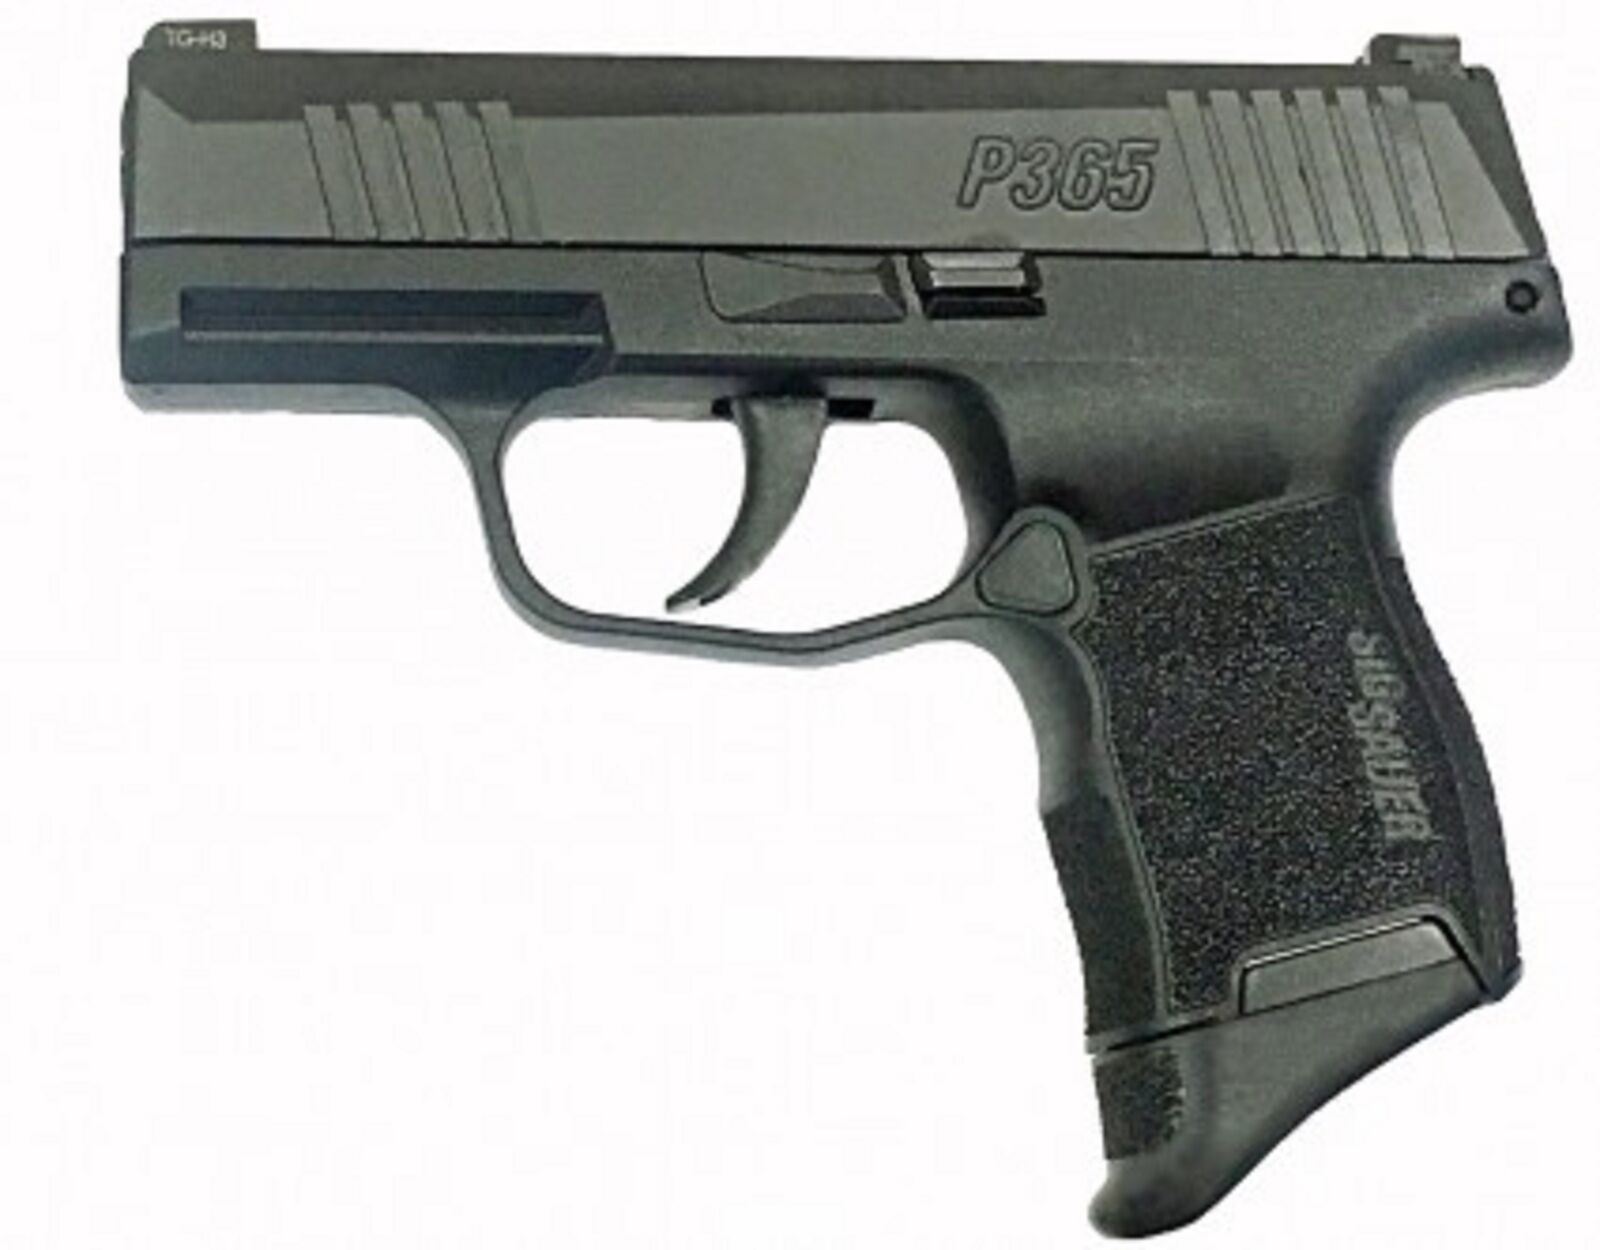 Pearce Grips Inc PG365 Polymer Grip Extension for Sig P365 - Black Matte